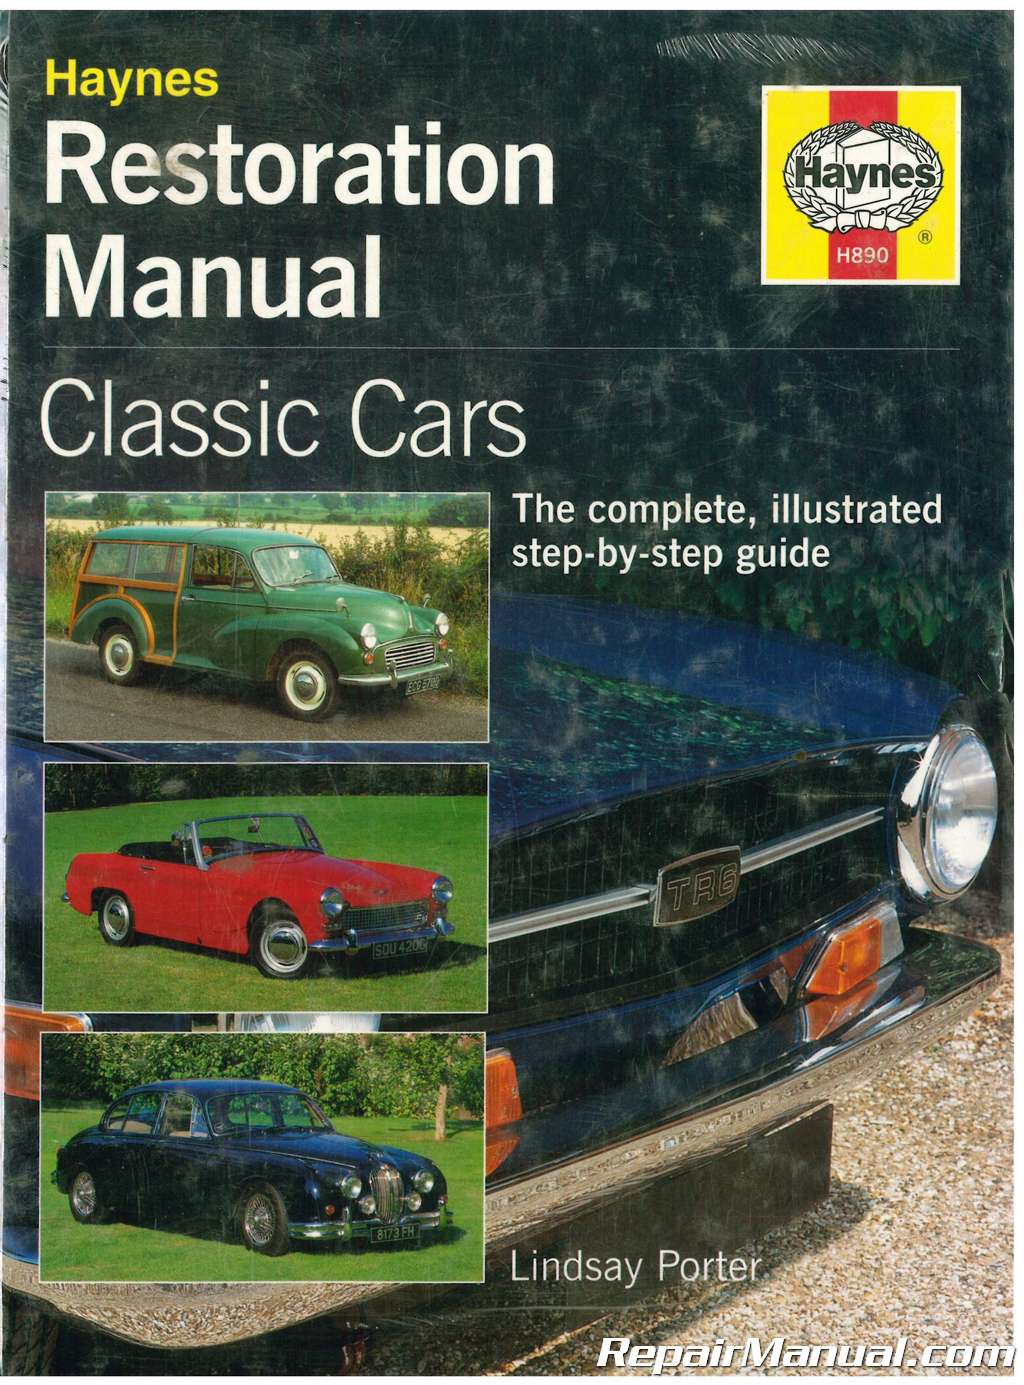 Restoration Manual Classic Cars: The Complete Illustrated Step-by-Step Guide